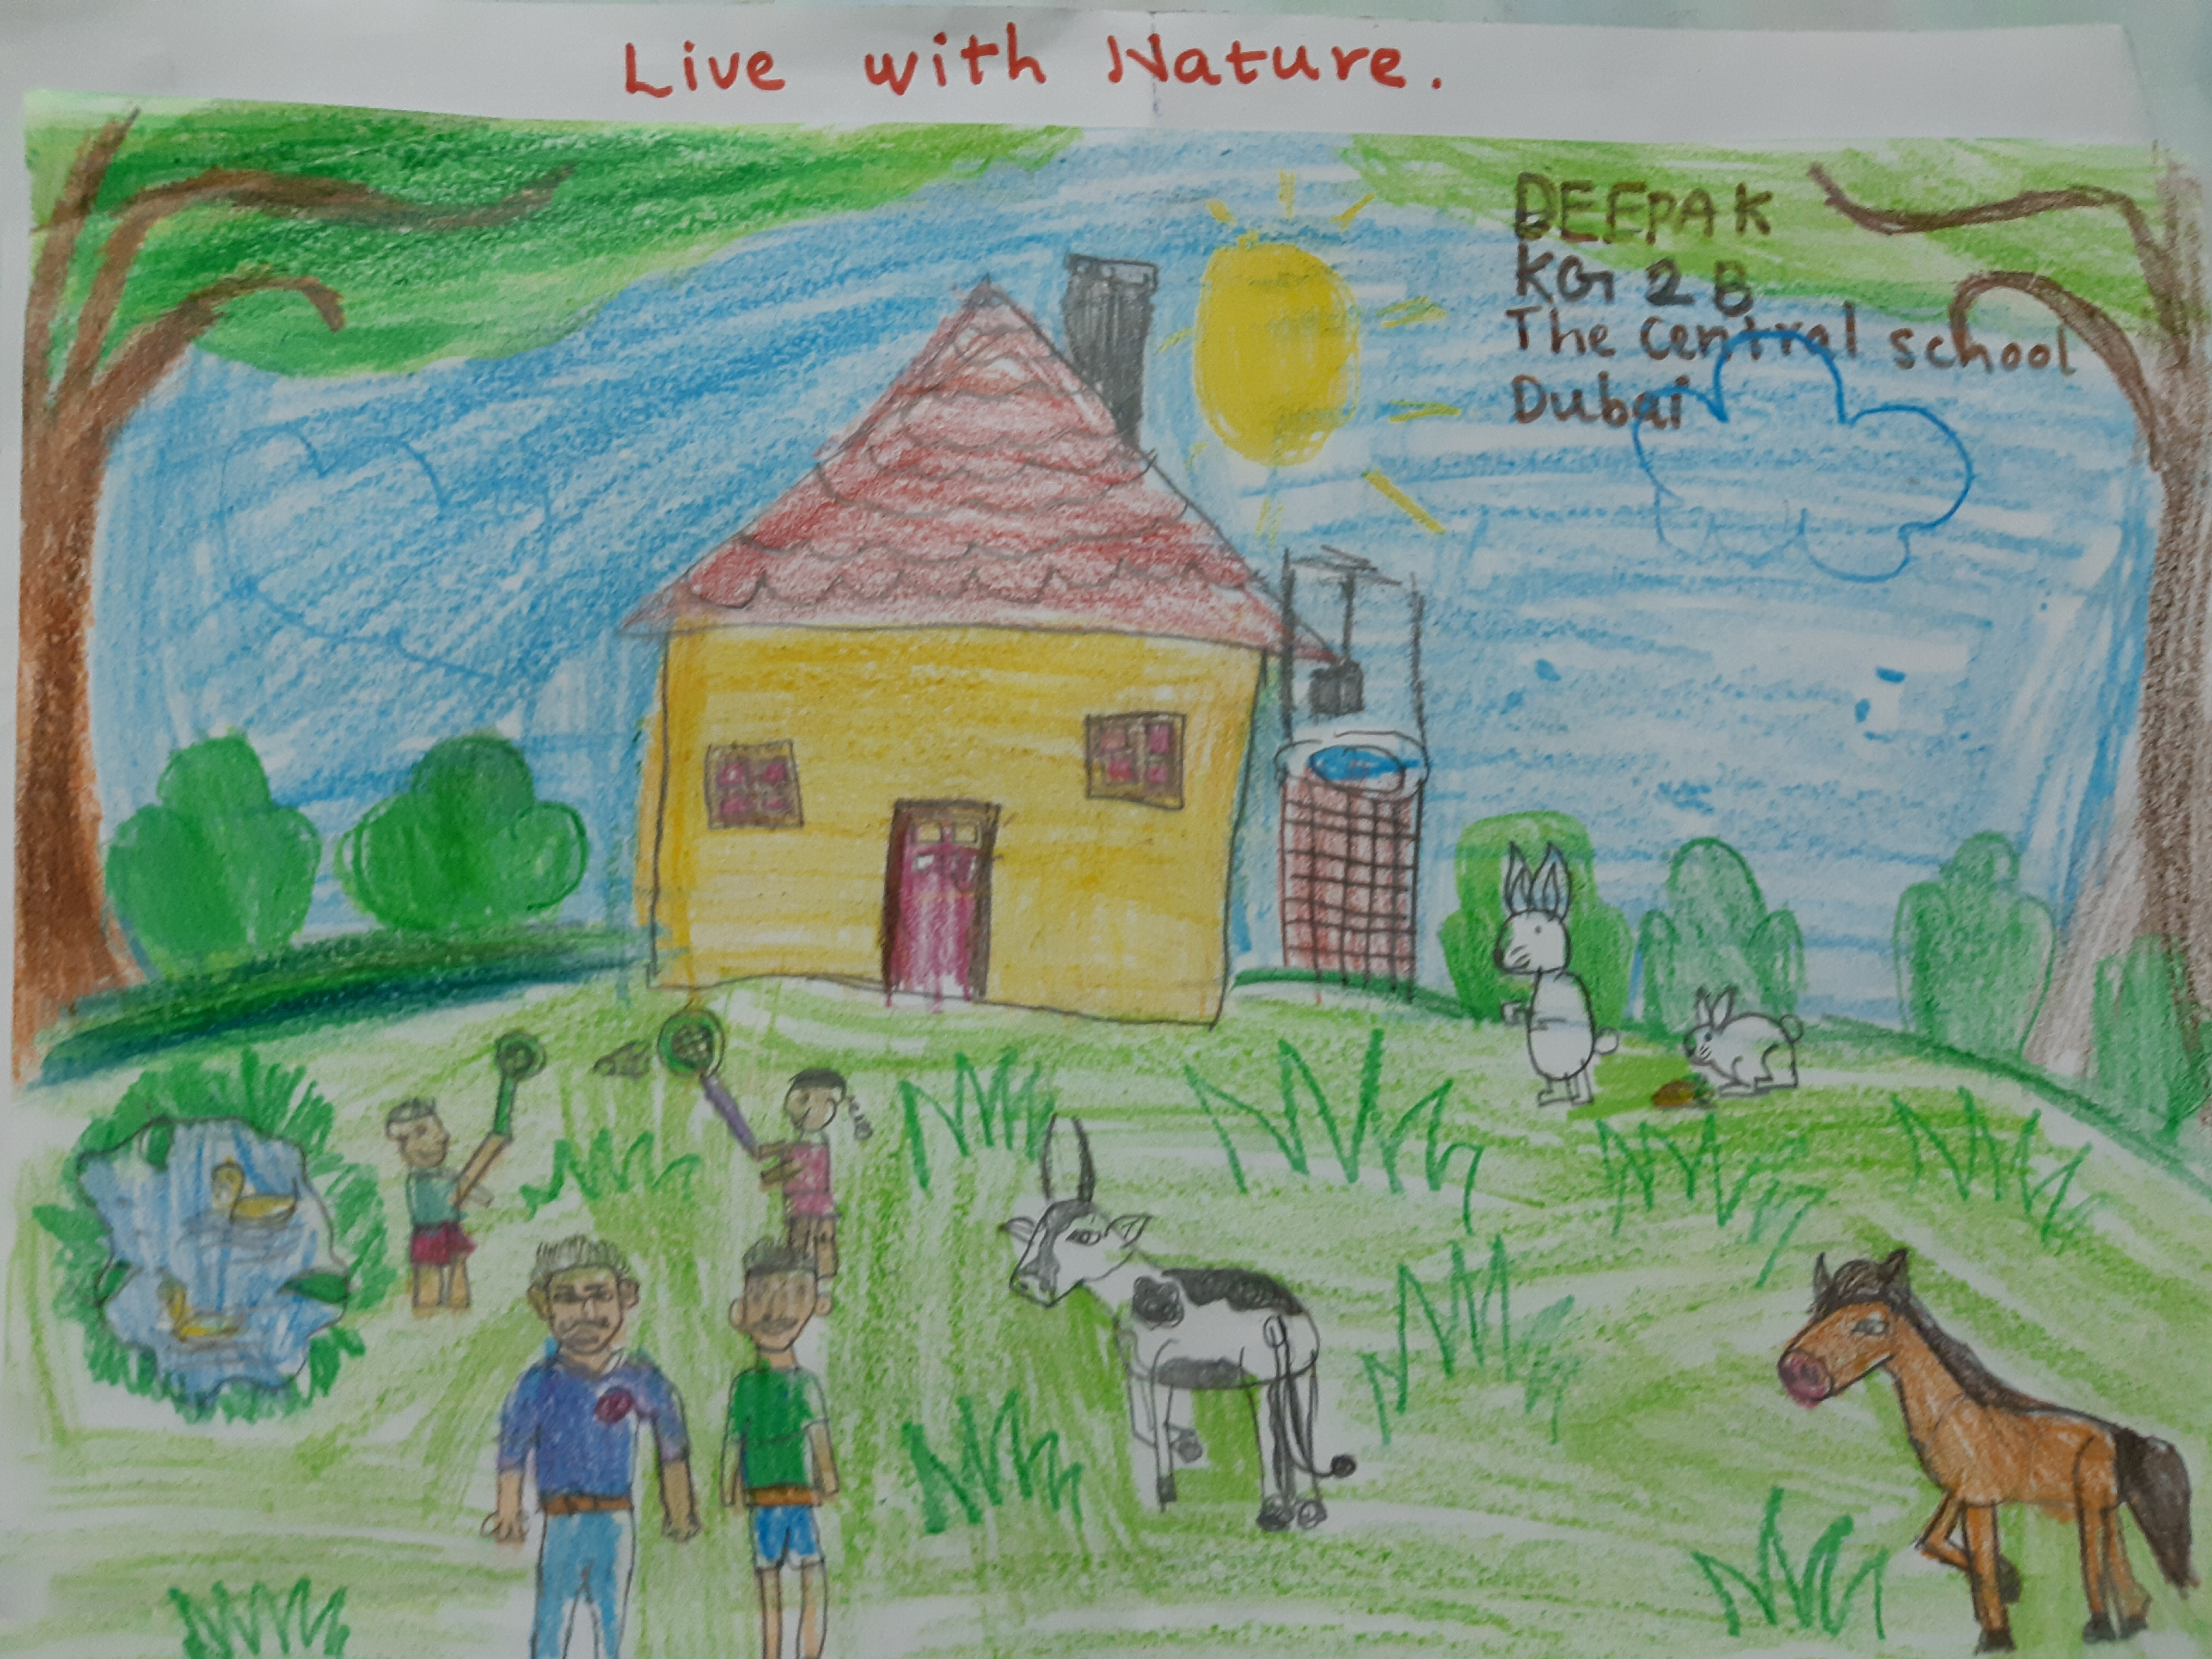 Live with nature by Deepak.S